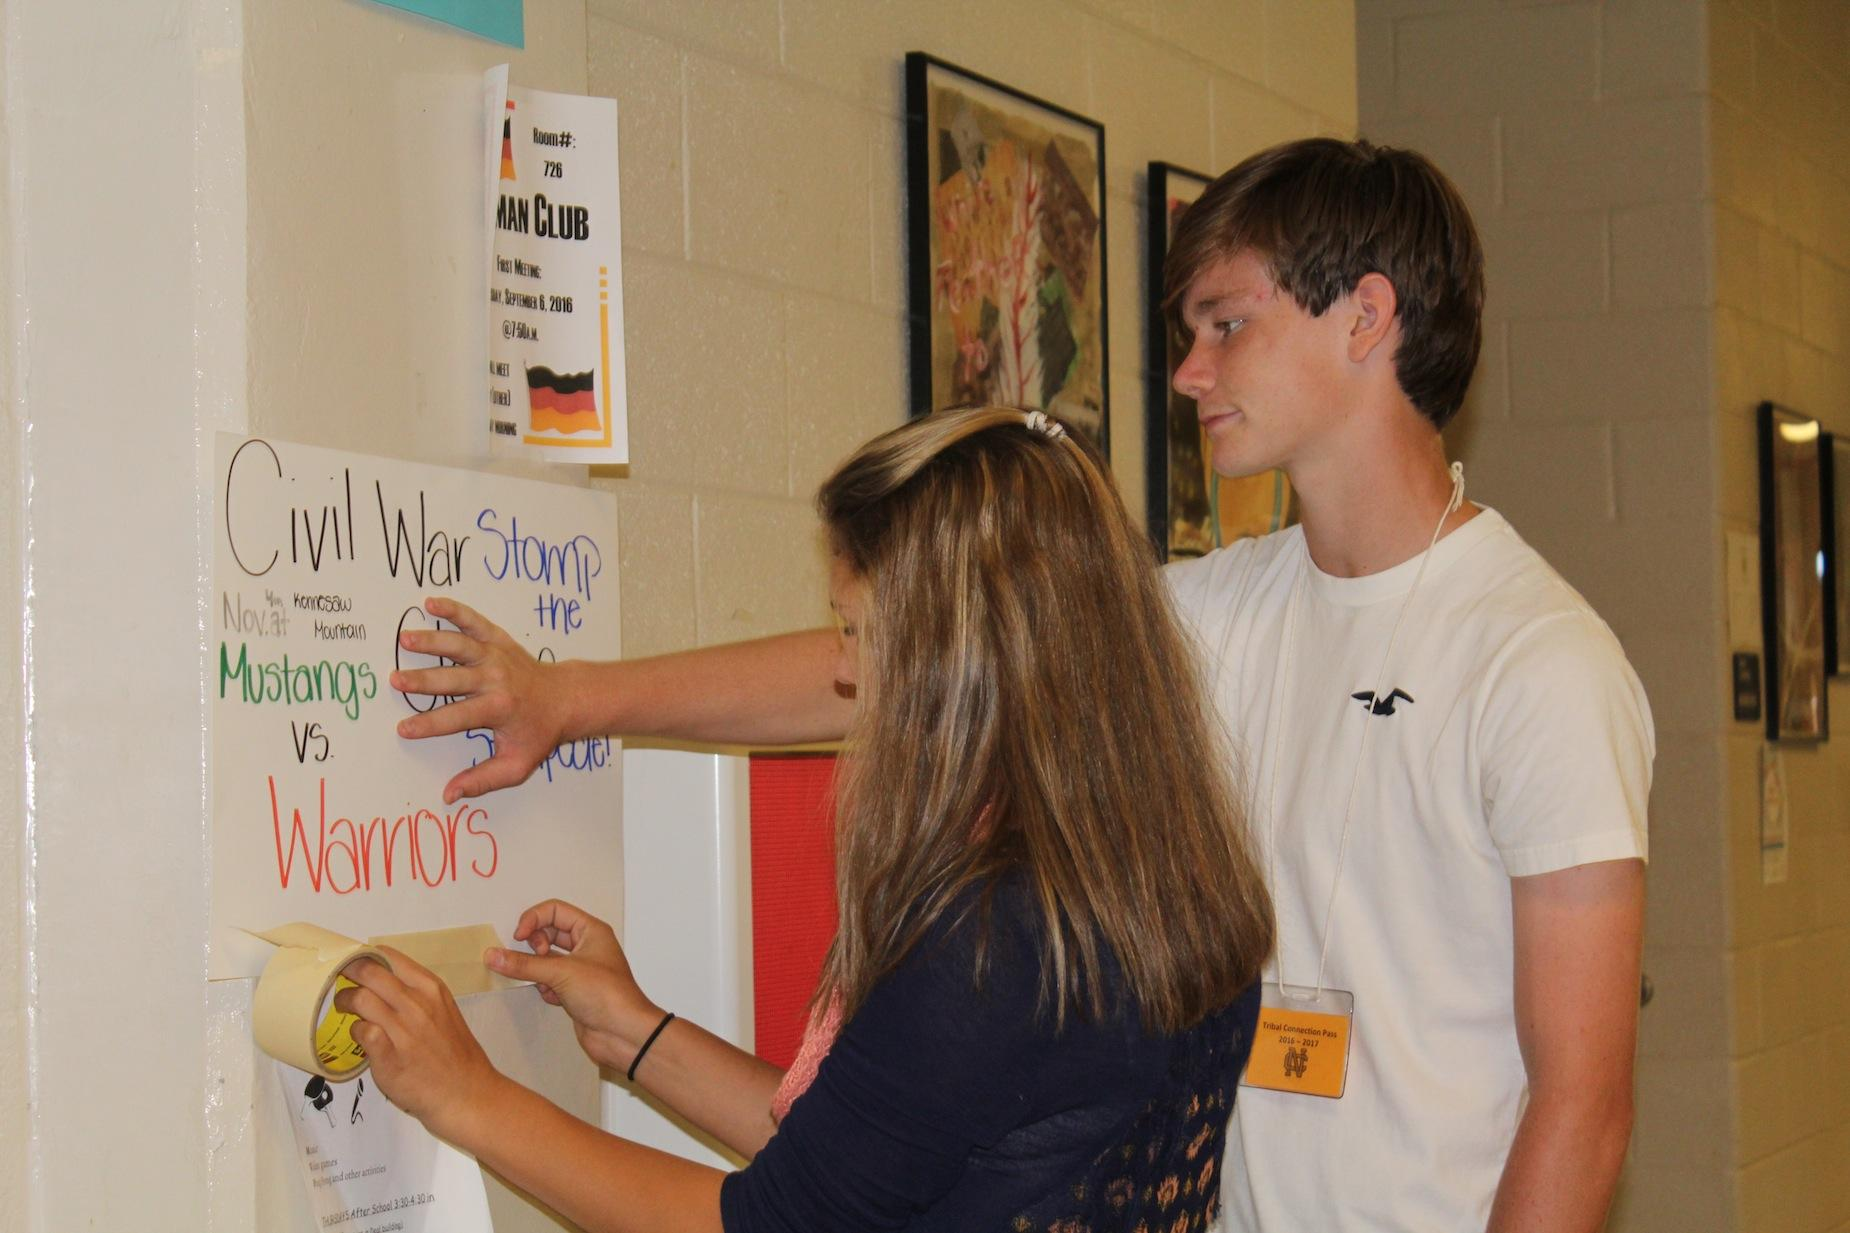 Freshmen Malina Cagle and Brian Morgan hang up posters promoting this Friday's Civil War themed game against the Kennesaw Mountain Mustangs. The Warriors plan to continue their dominance against their in-town rival, as they look for their eighth consecutive win against them. The game will be played at Kennesaw Mountain, so make sure to go out and support!